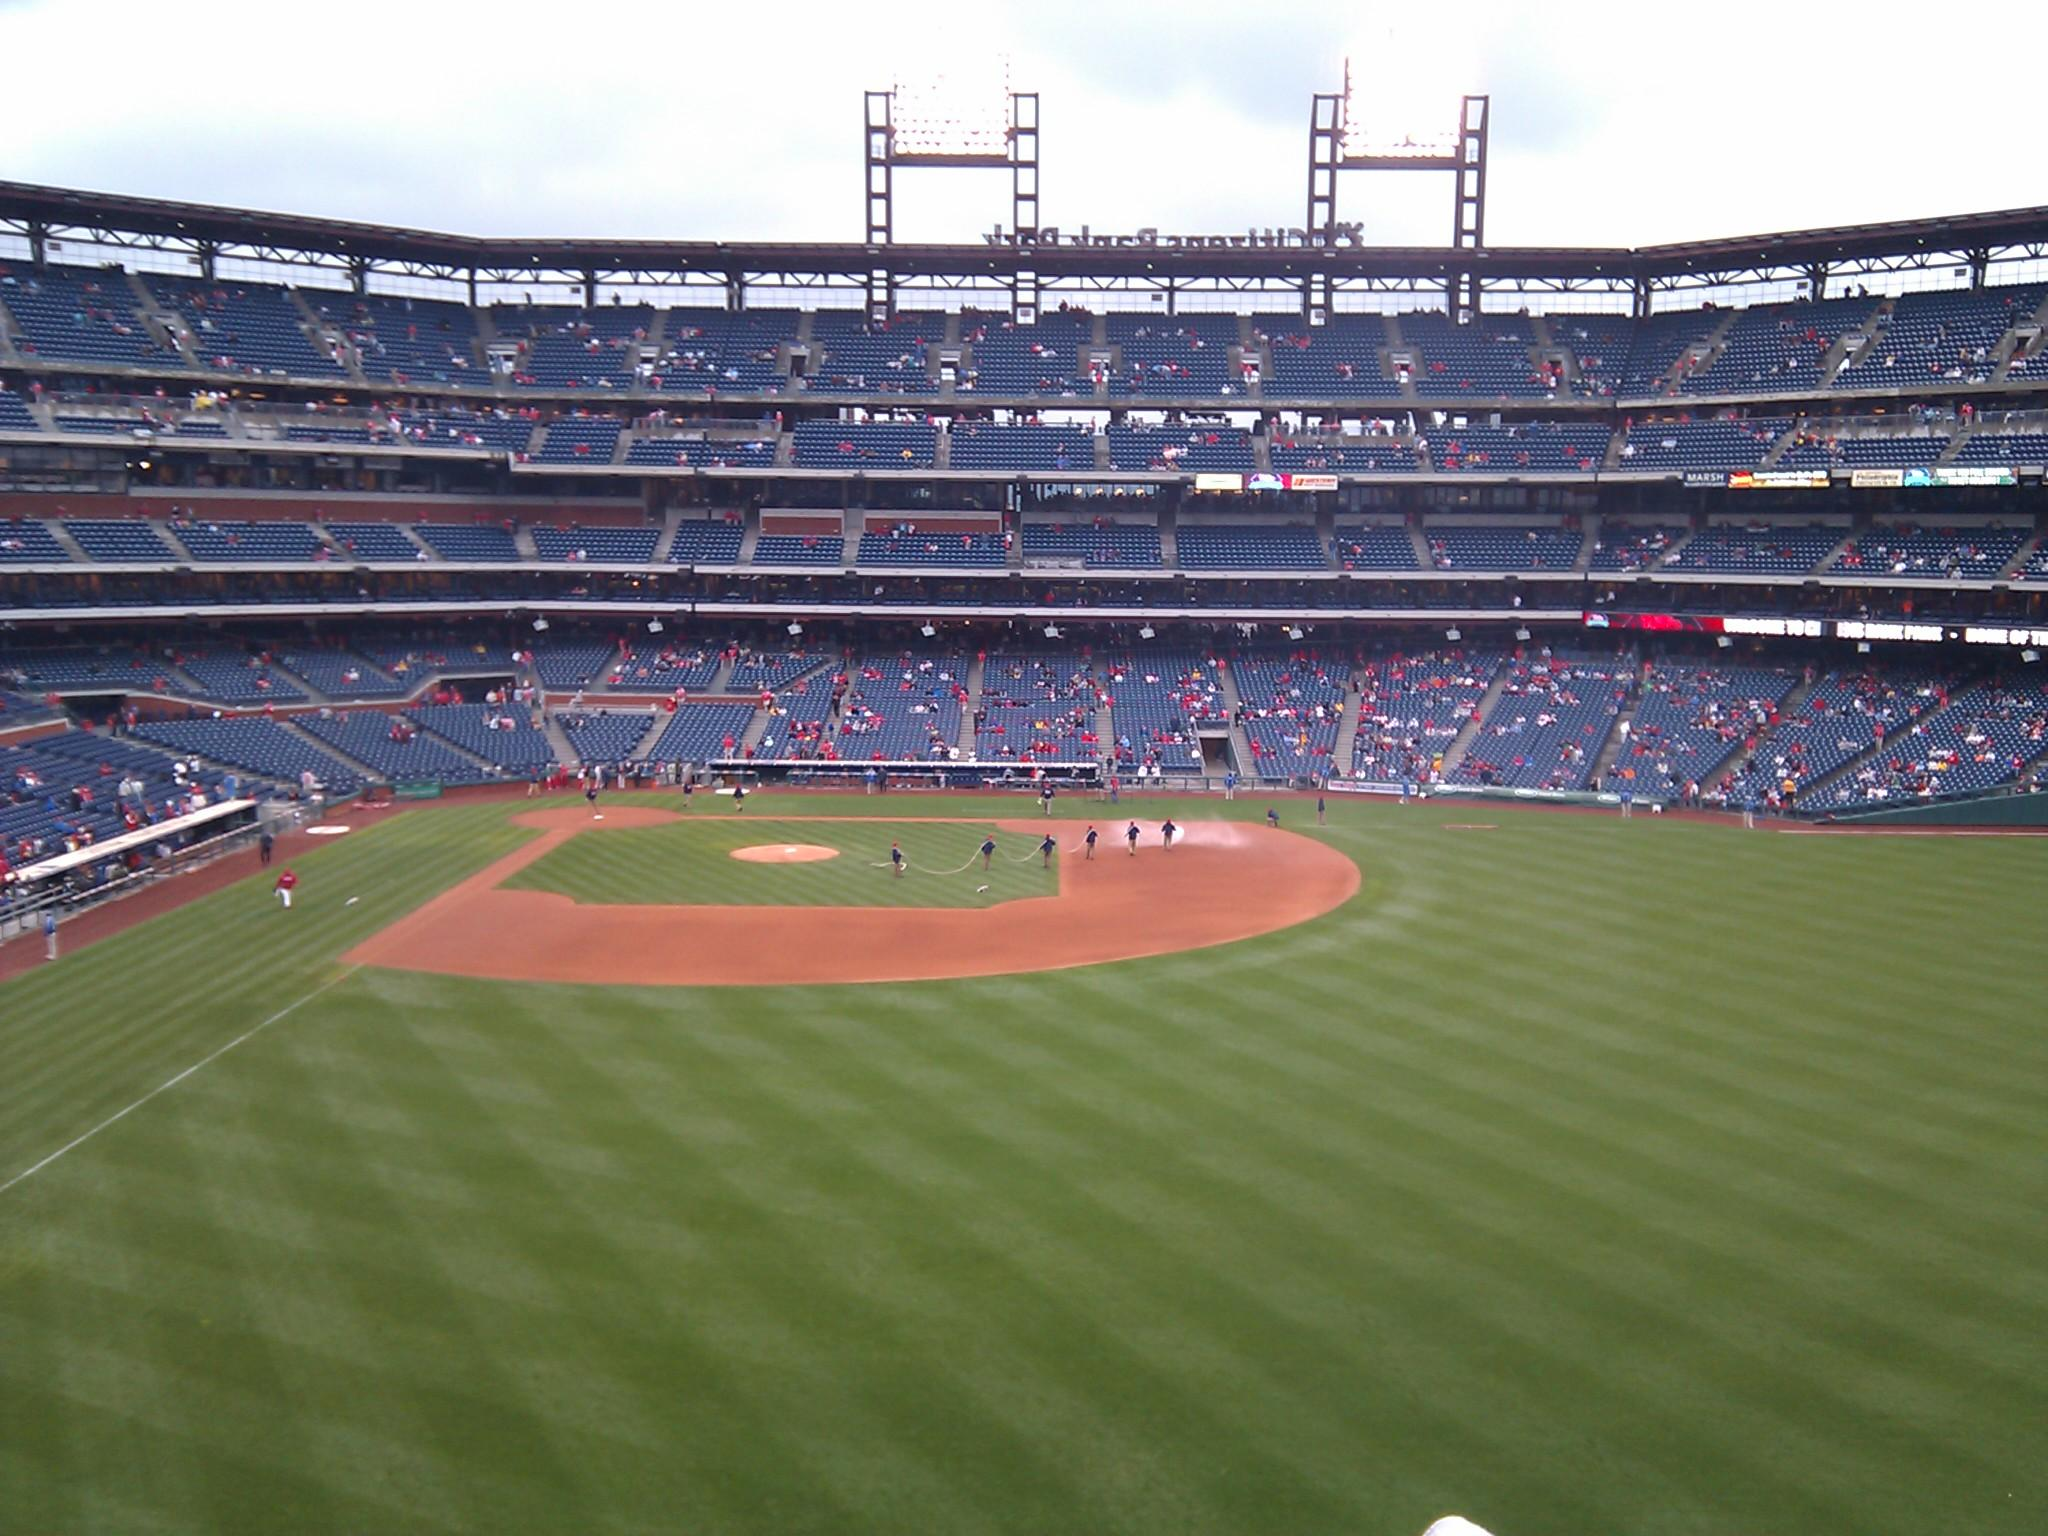 Citizens Bank Park Section 203 Row 6 Seat 16